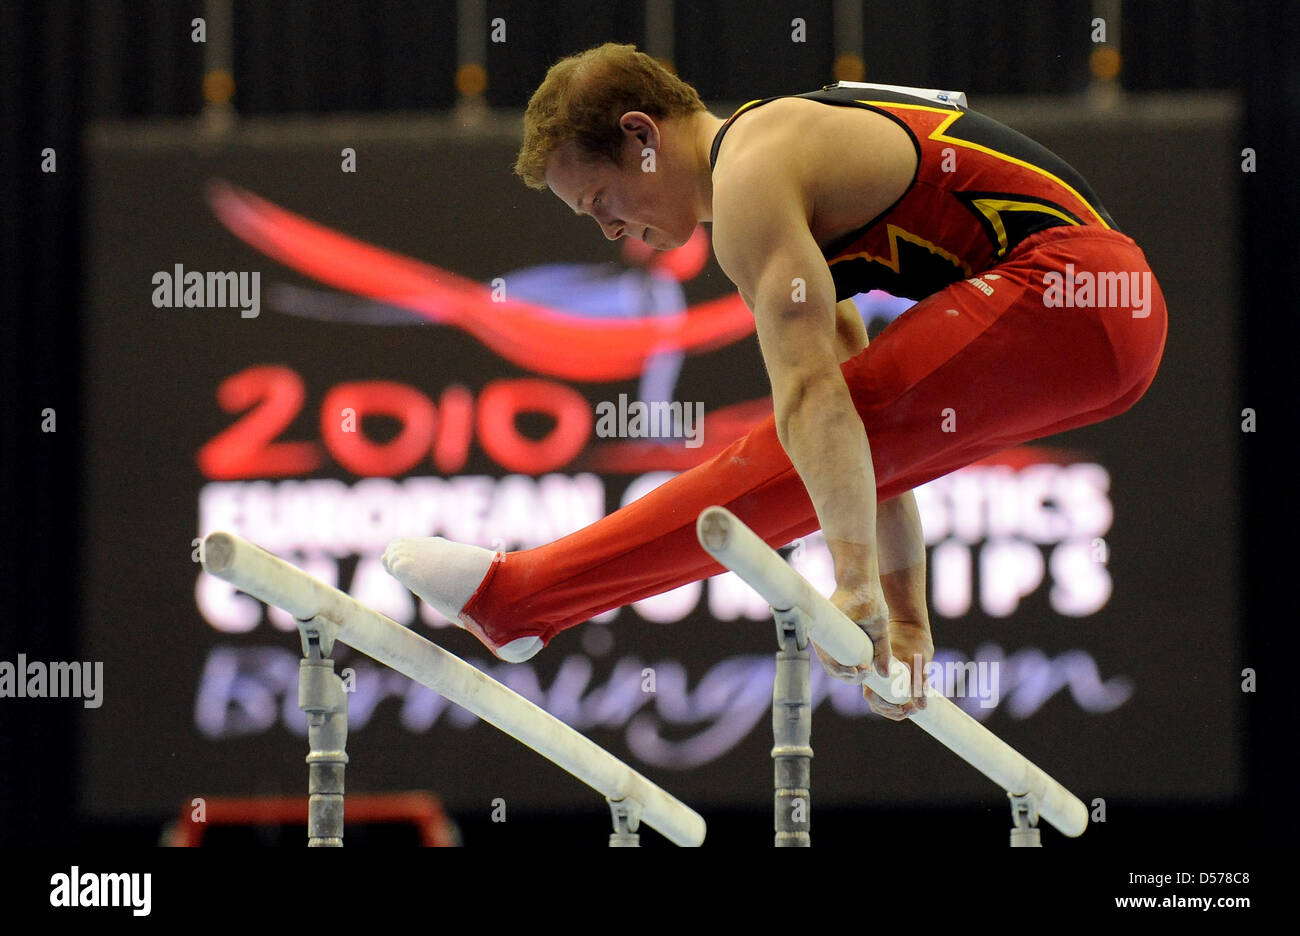 German gymnasts Fabian Hambuechen performs at the parallel bars at the European Championships Artistic Gymnastics - Stock Image